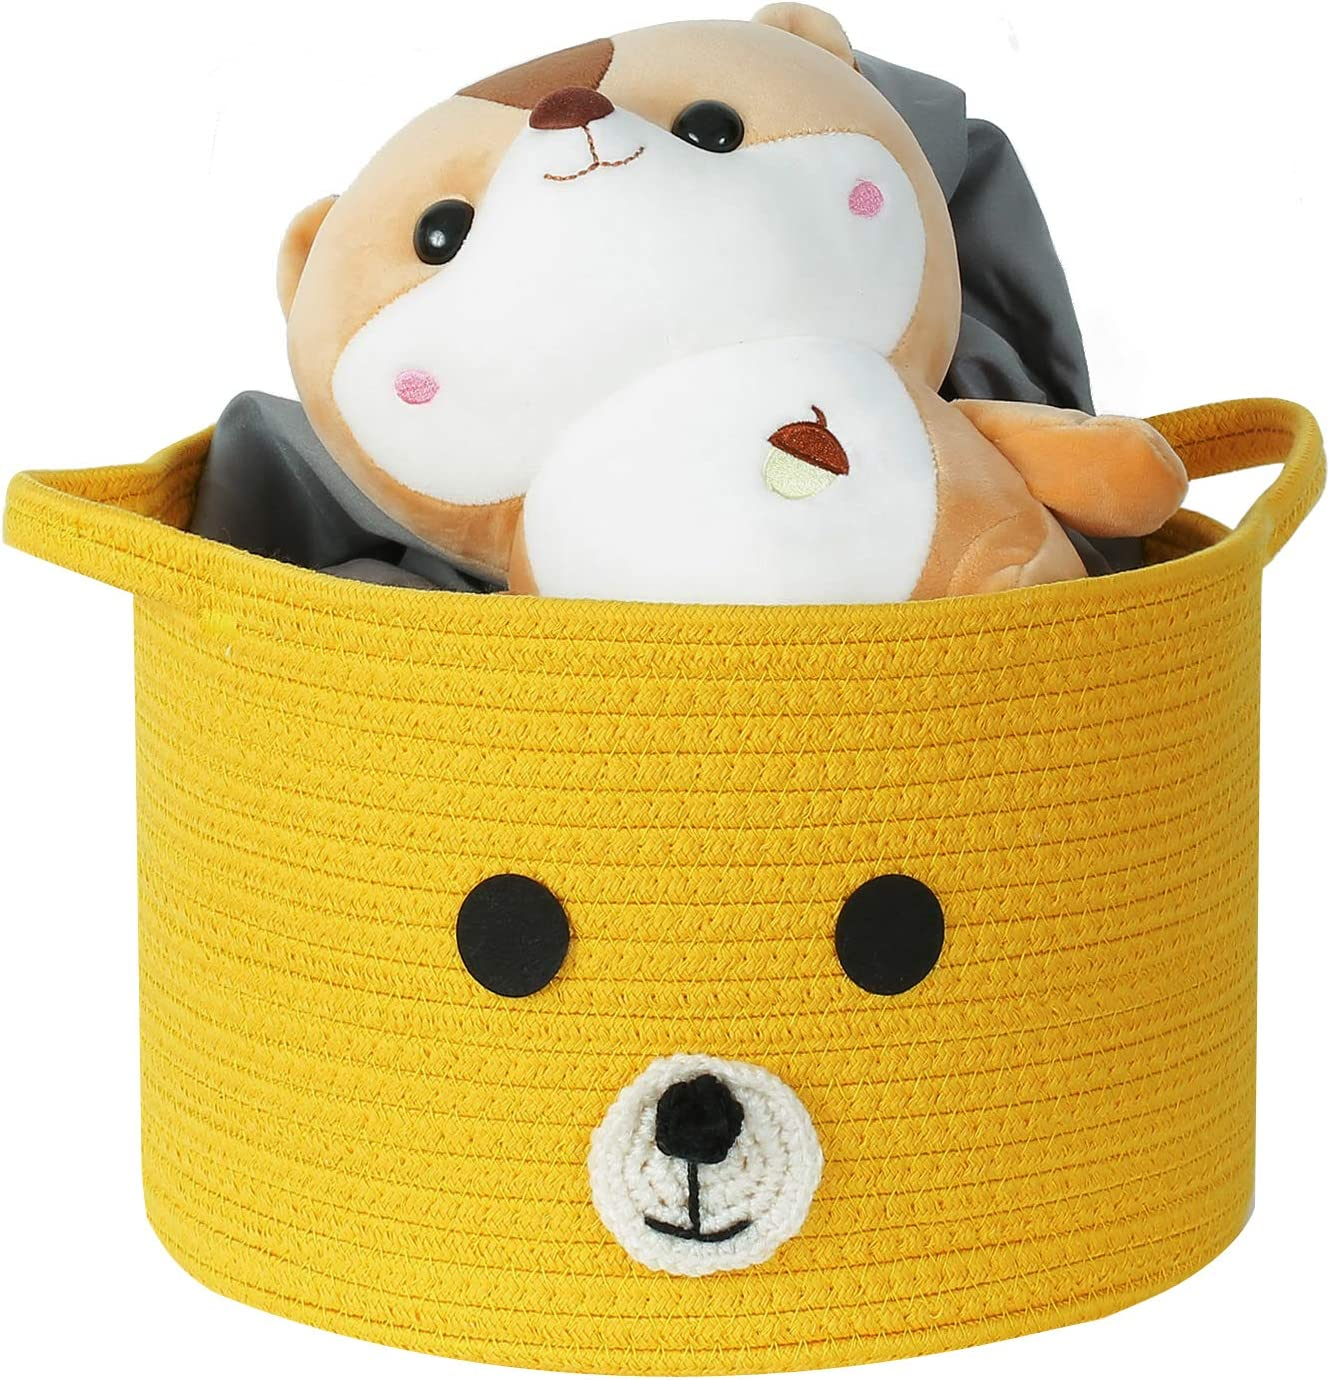 Clothes,12x 12x 8 Towels Enzk/&Unity Small Cotton Rope Storage Basket with Handles Decorative Cute Bear Organizer Bins for Kids Nursery,Toys Grey